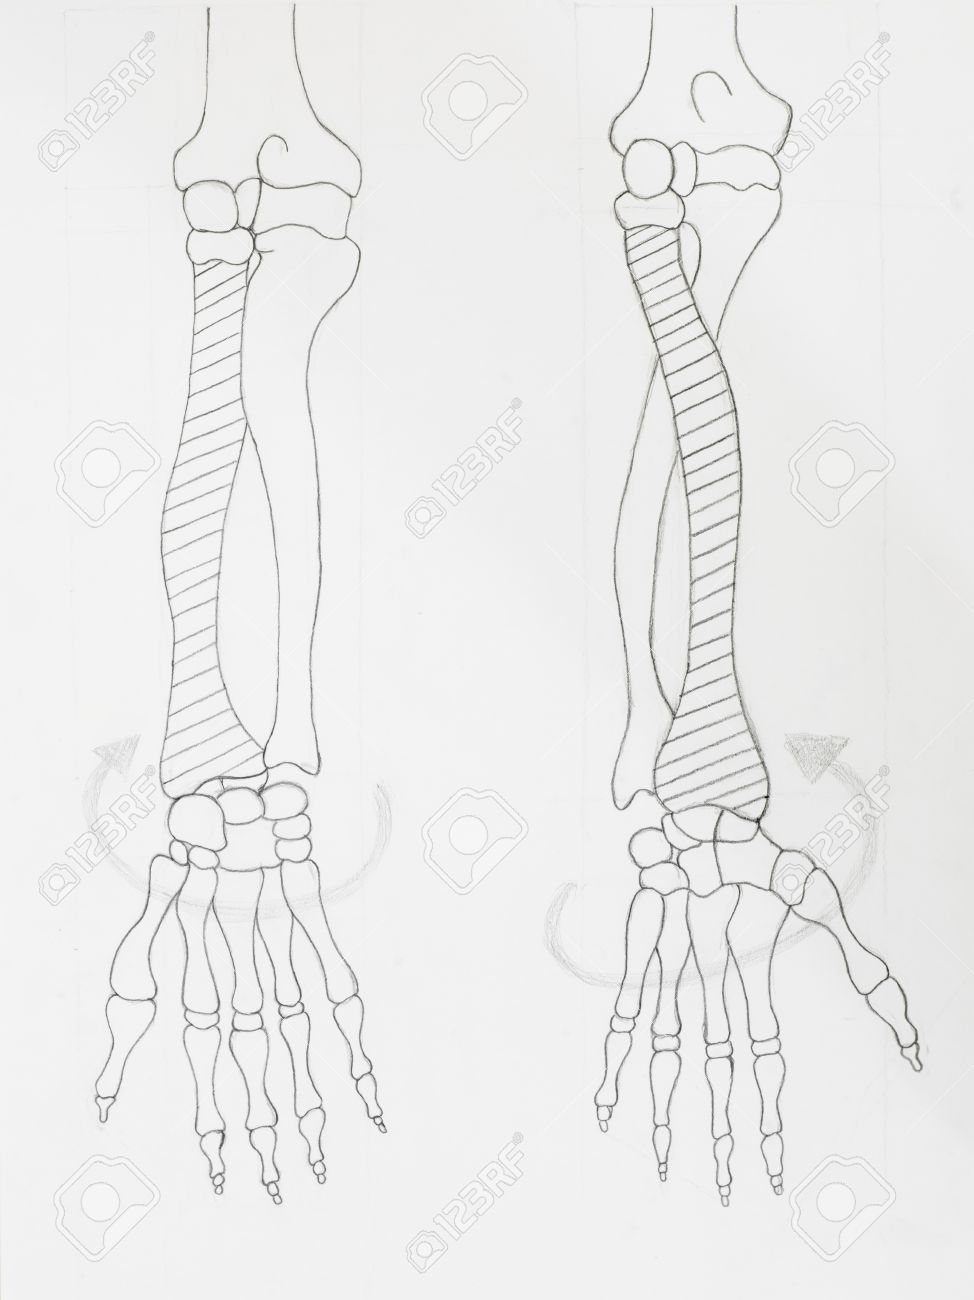 Detail Of Arm Bones Pencil Drawing On White Paper Stock Photo